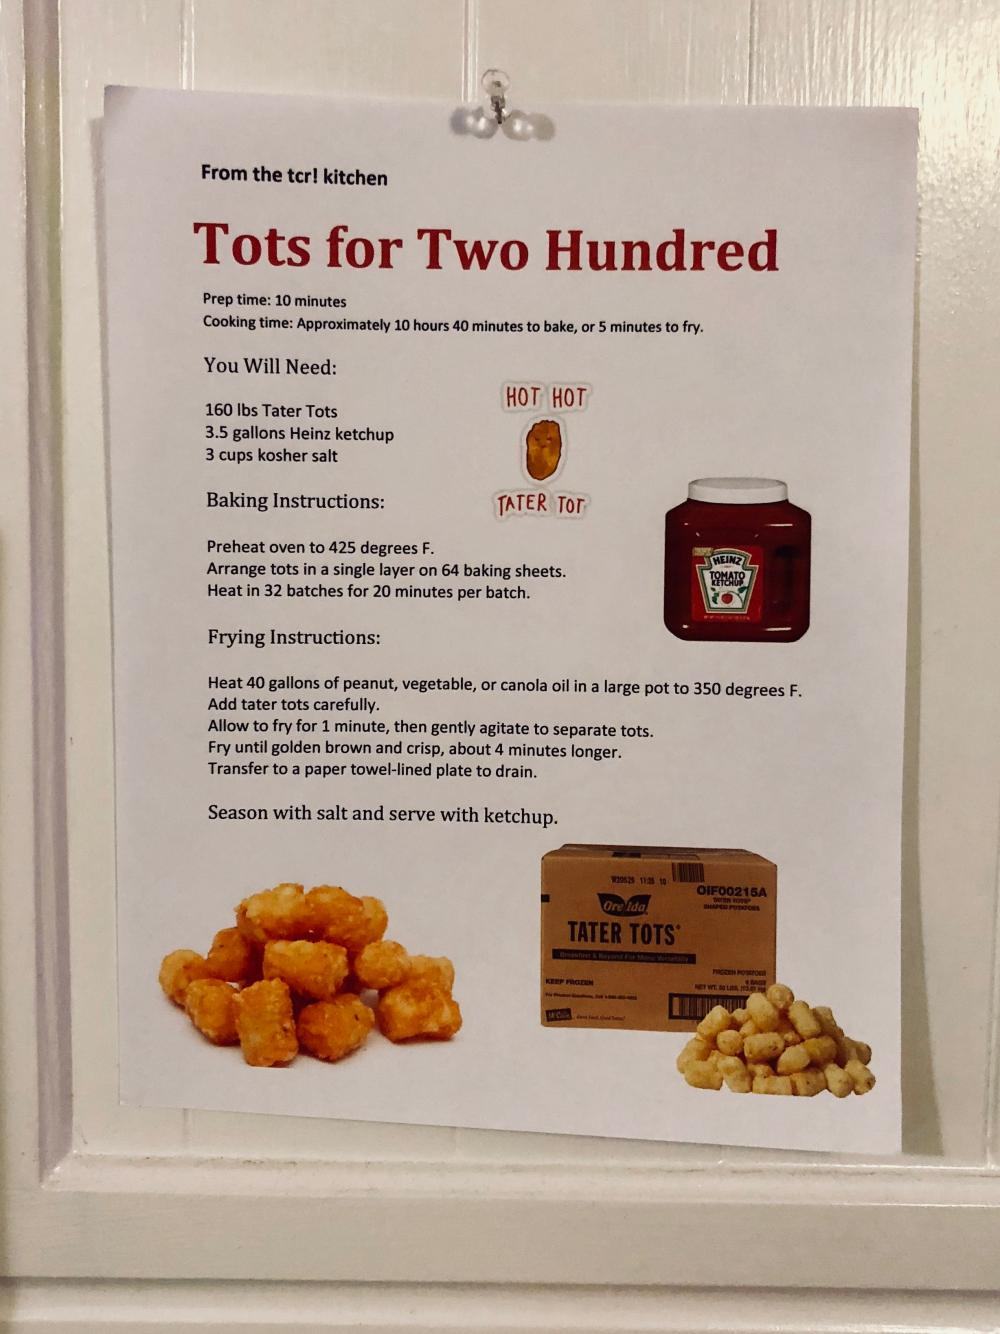 Tots for Two Hundred